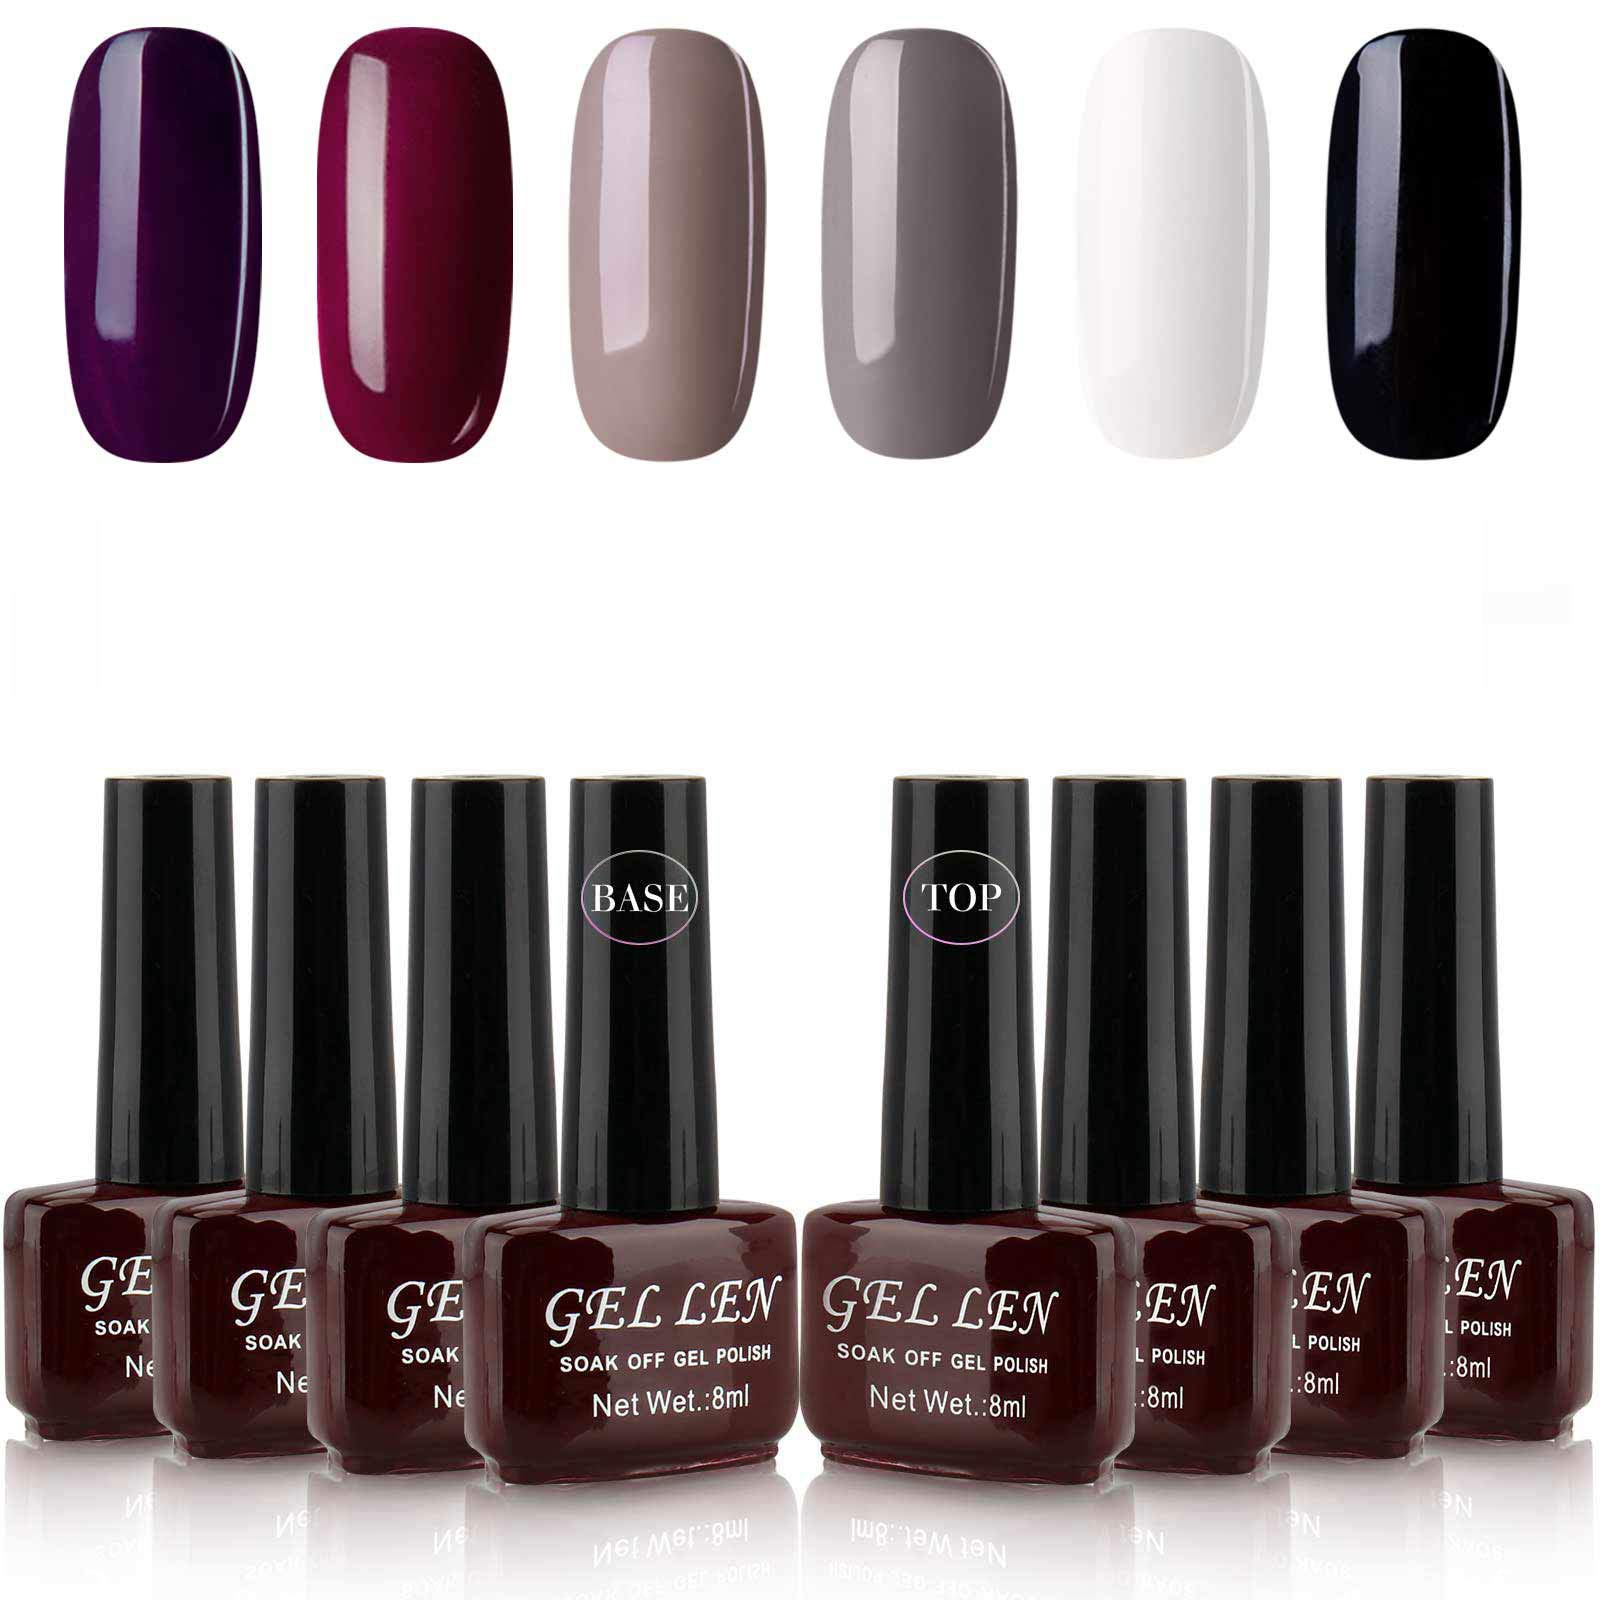 Gellen Gel Nail Polish Kit Classic Elegance 6 Colors With Base Coat and Top Coat - Popular Home Nail Salon Trendy Glamour Colors Set by Gellen